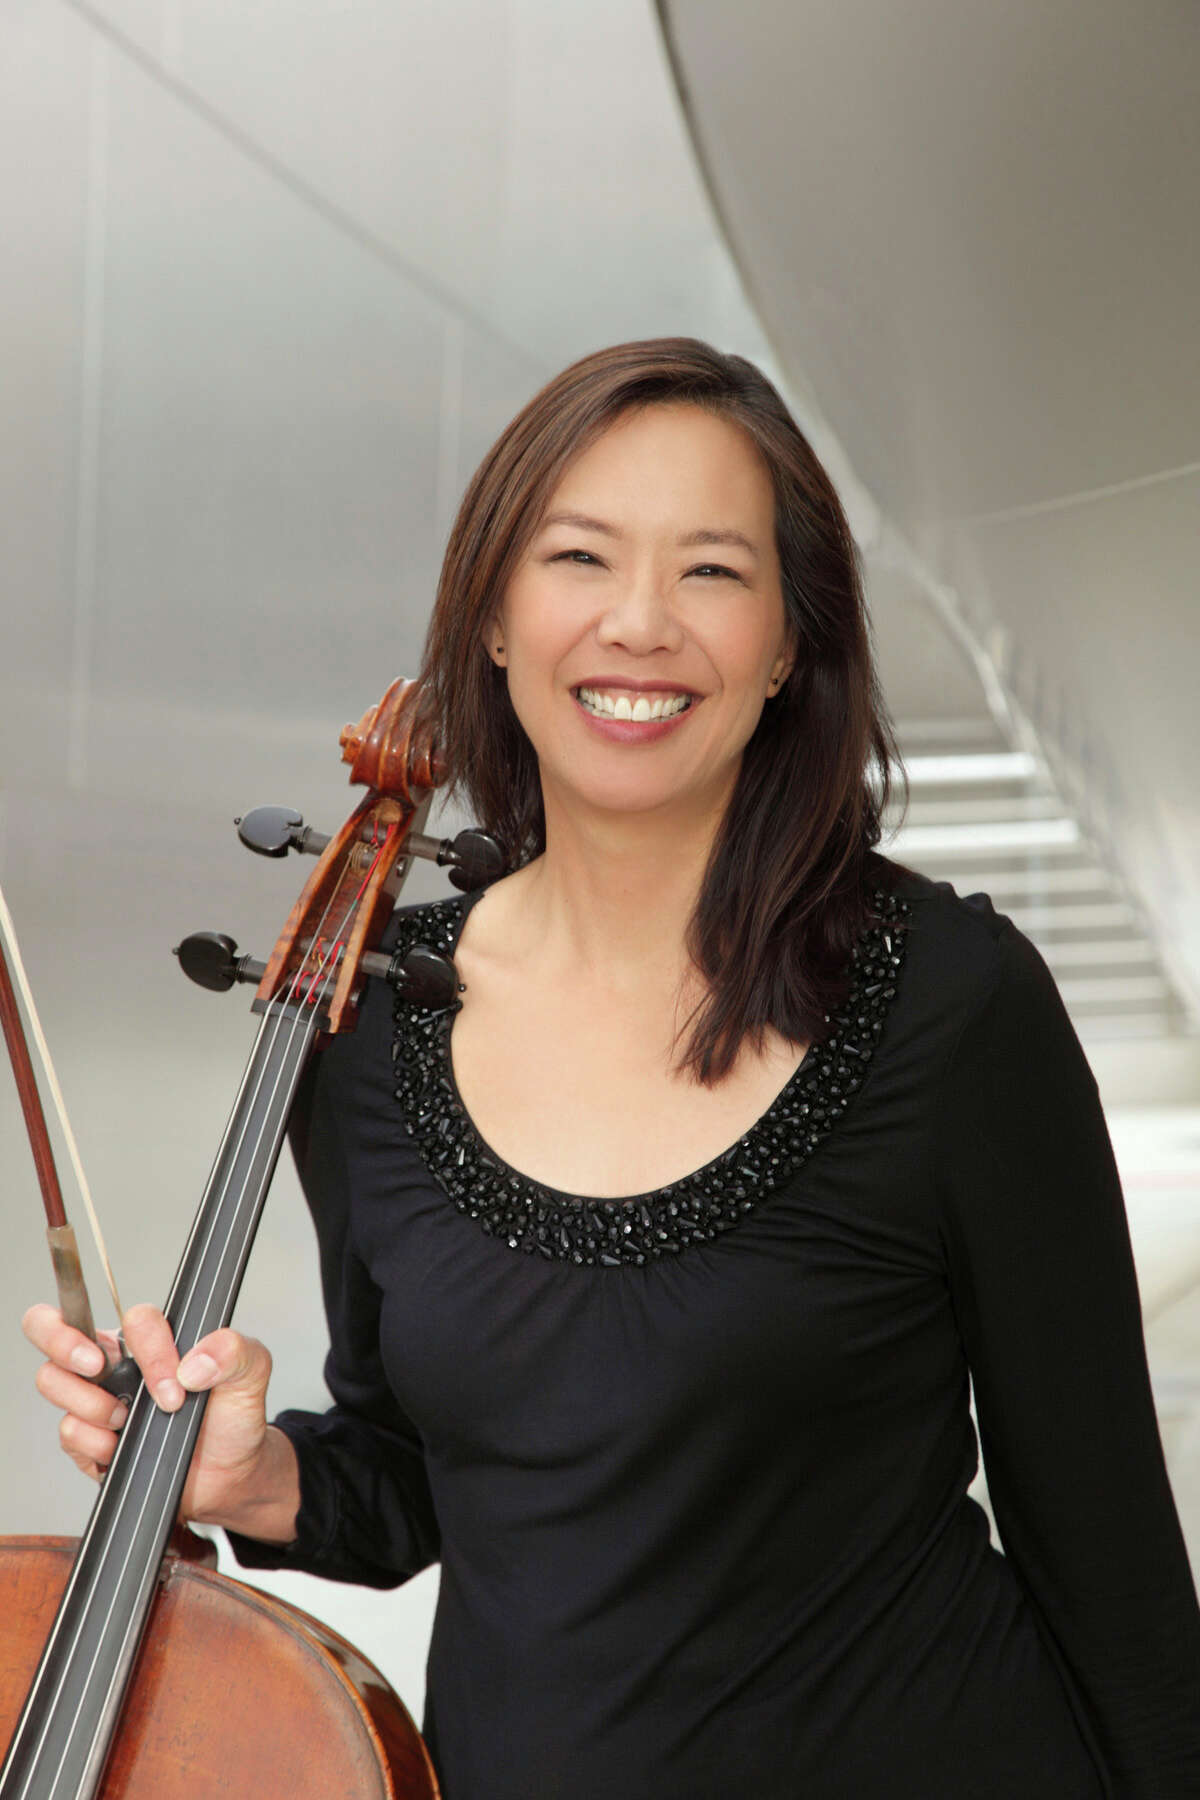 Gloria Lum, is one of the artists featured in the Cactus Pear Music Festival. The Cactus Pear Music Festival's 19th season takes place July 10, July 11, July 17 and July 18 in San Antonio at the Coker United Methodist Church, 231 E. North Loop Road.